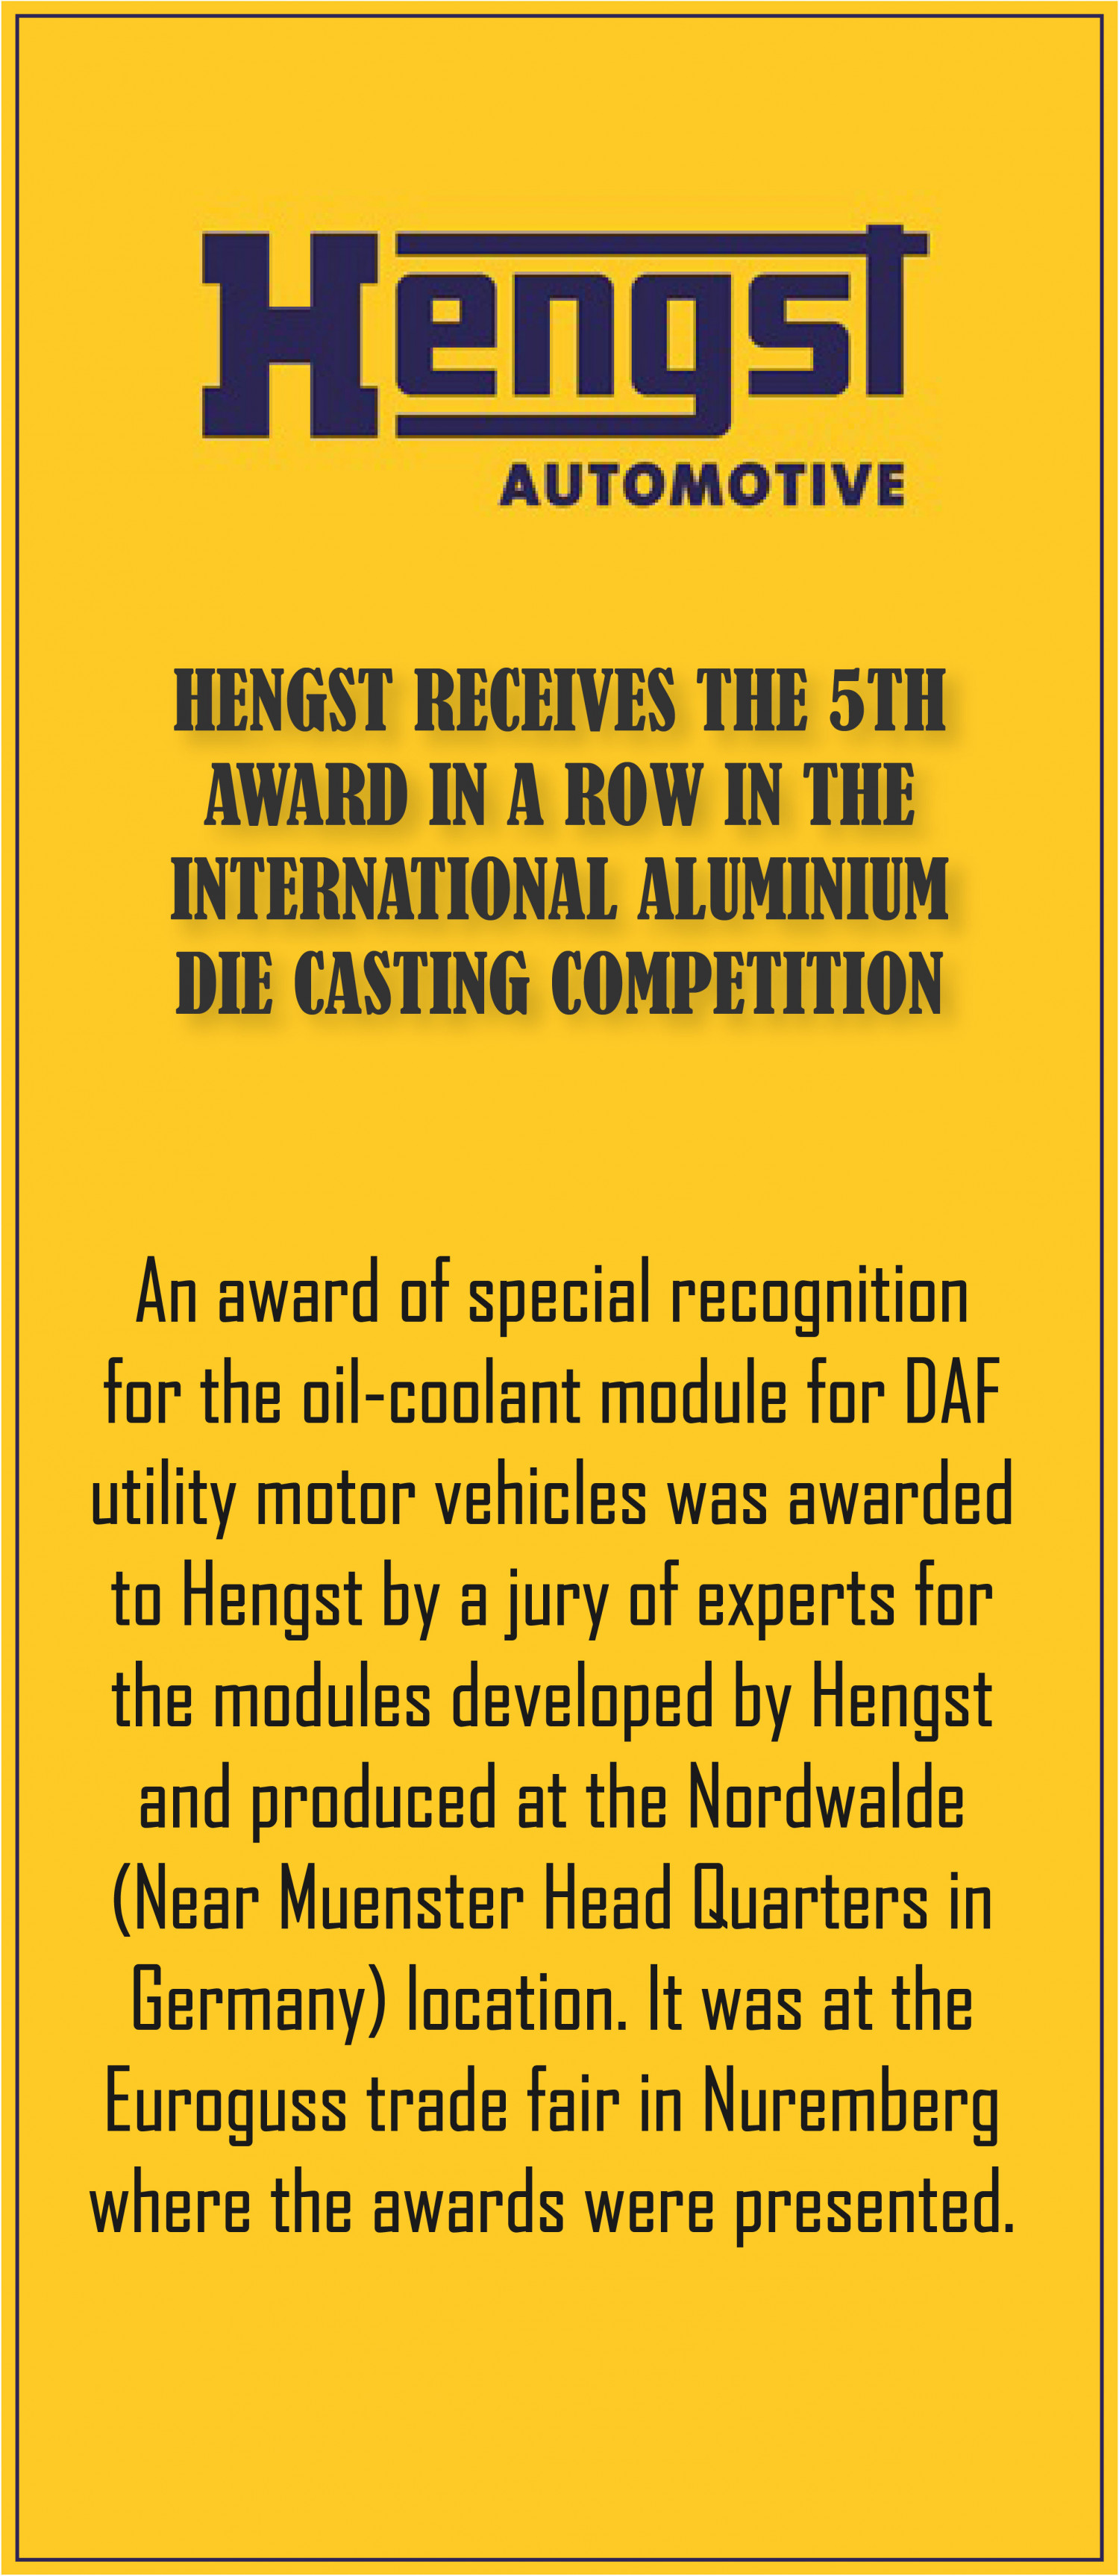 Hengst receives the 5th award Aluminium Die Casting Competition Infographic